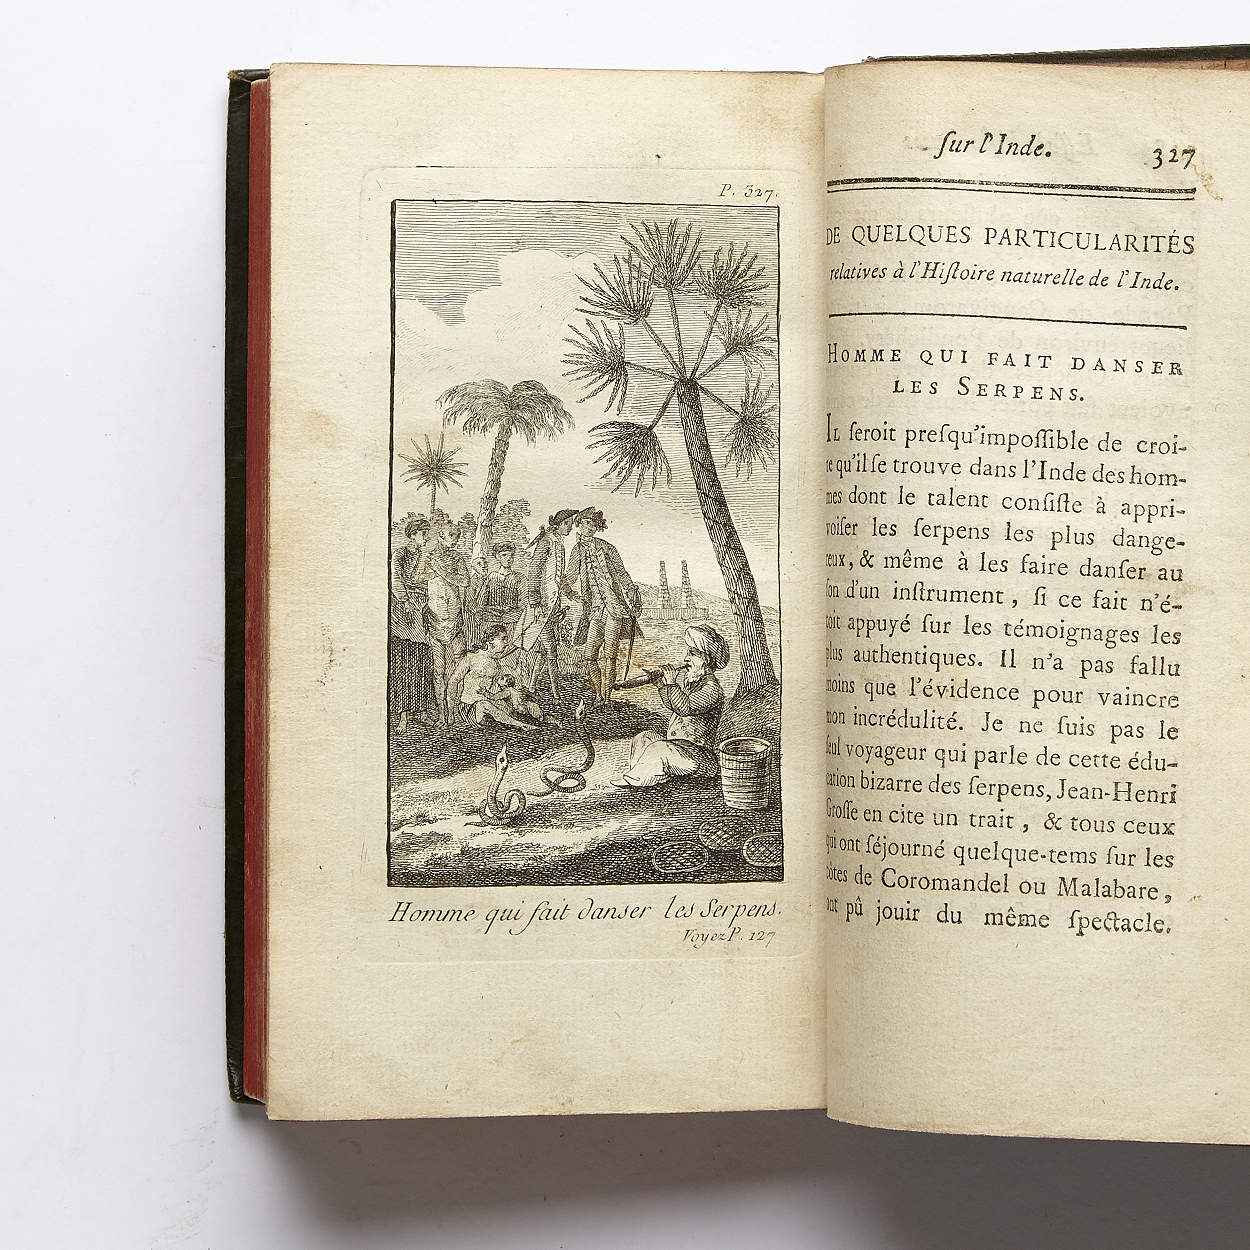 La Flotte on Indian history 1769